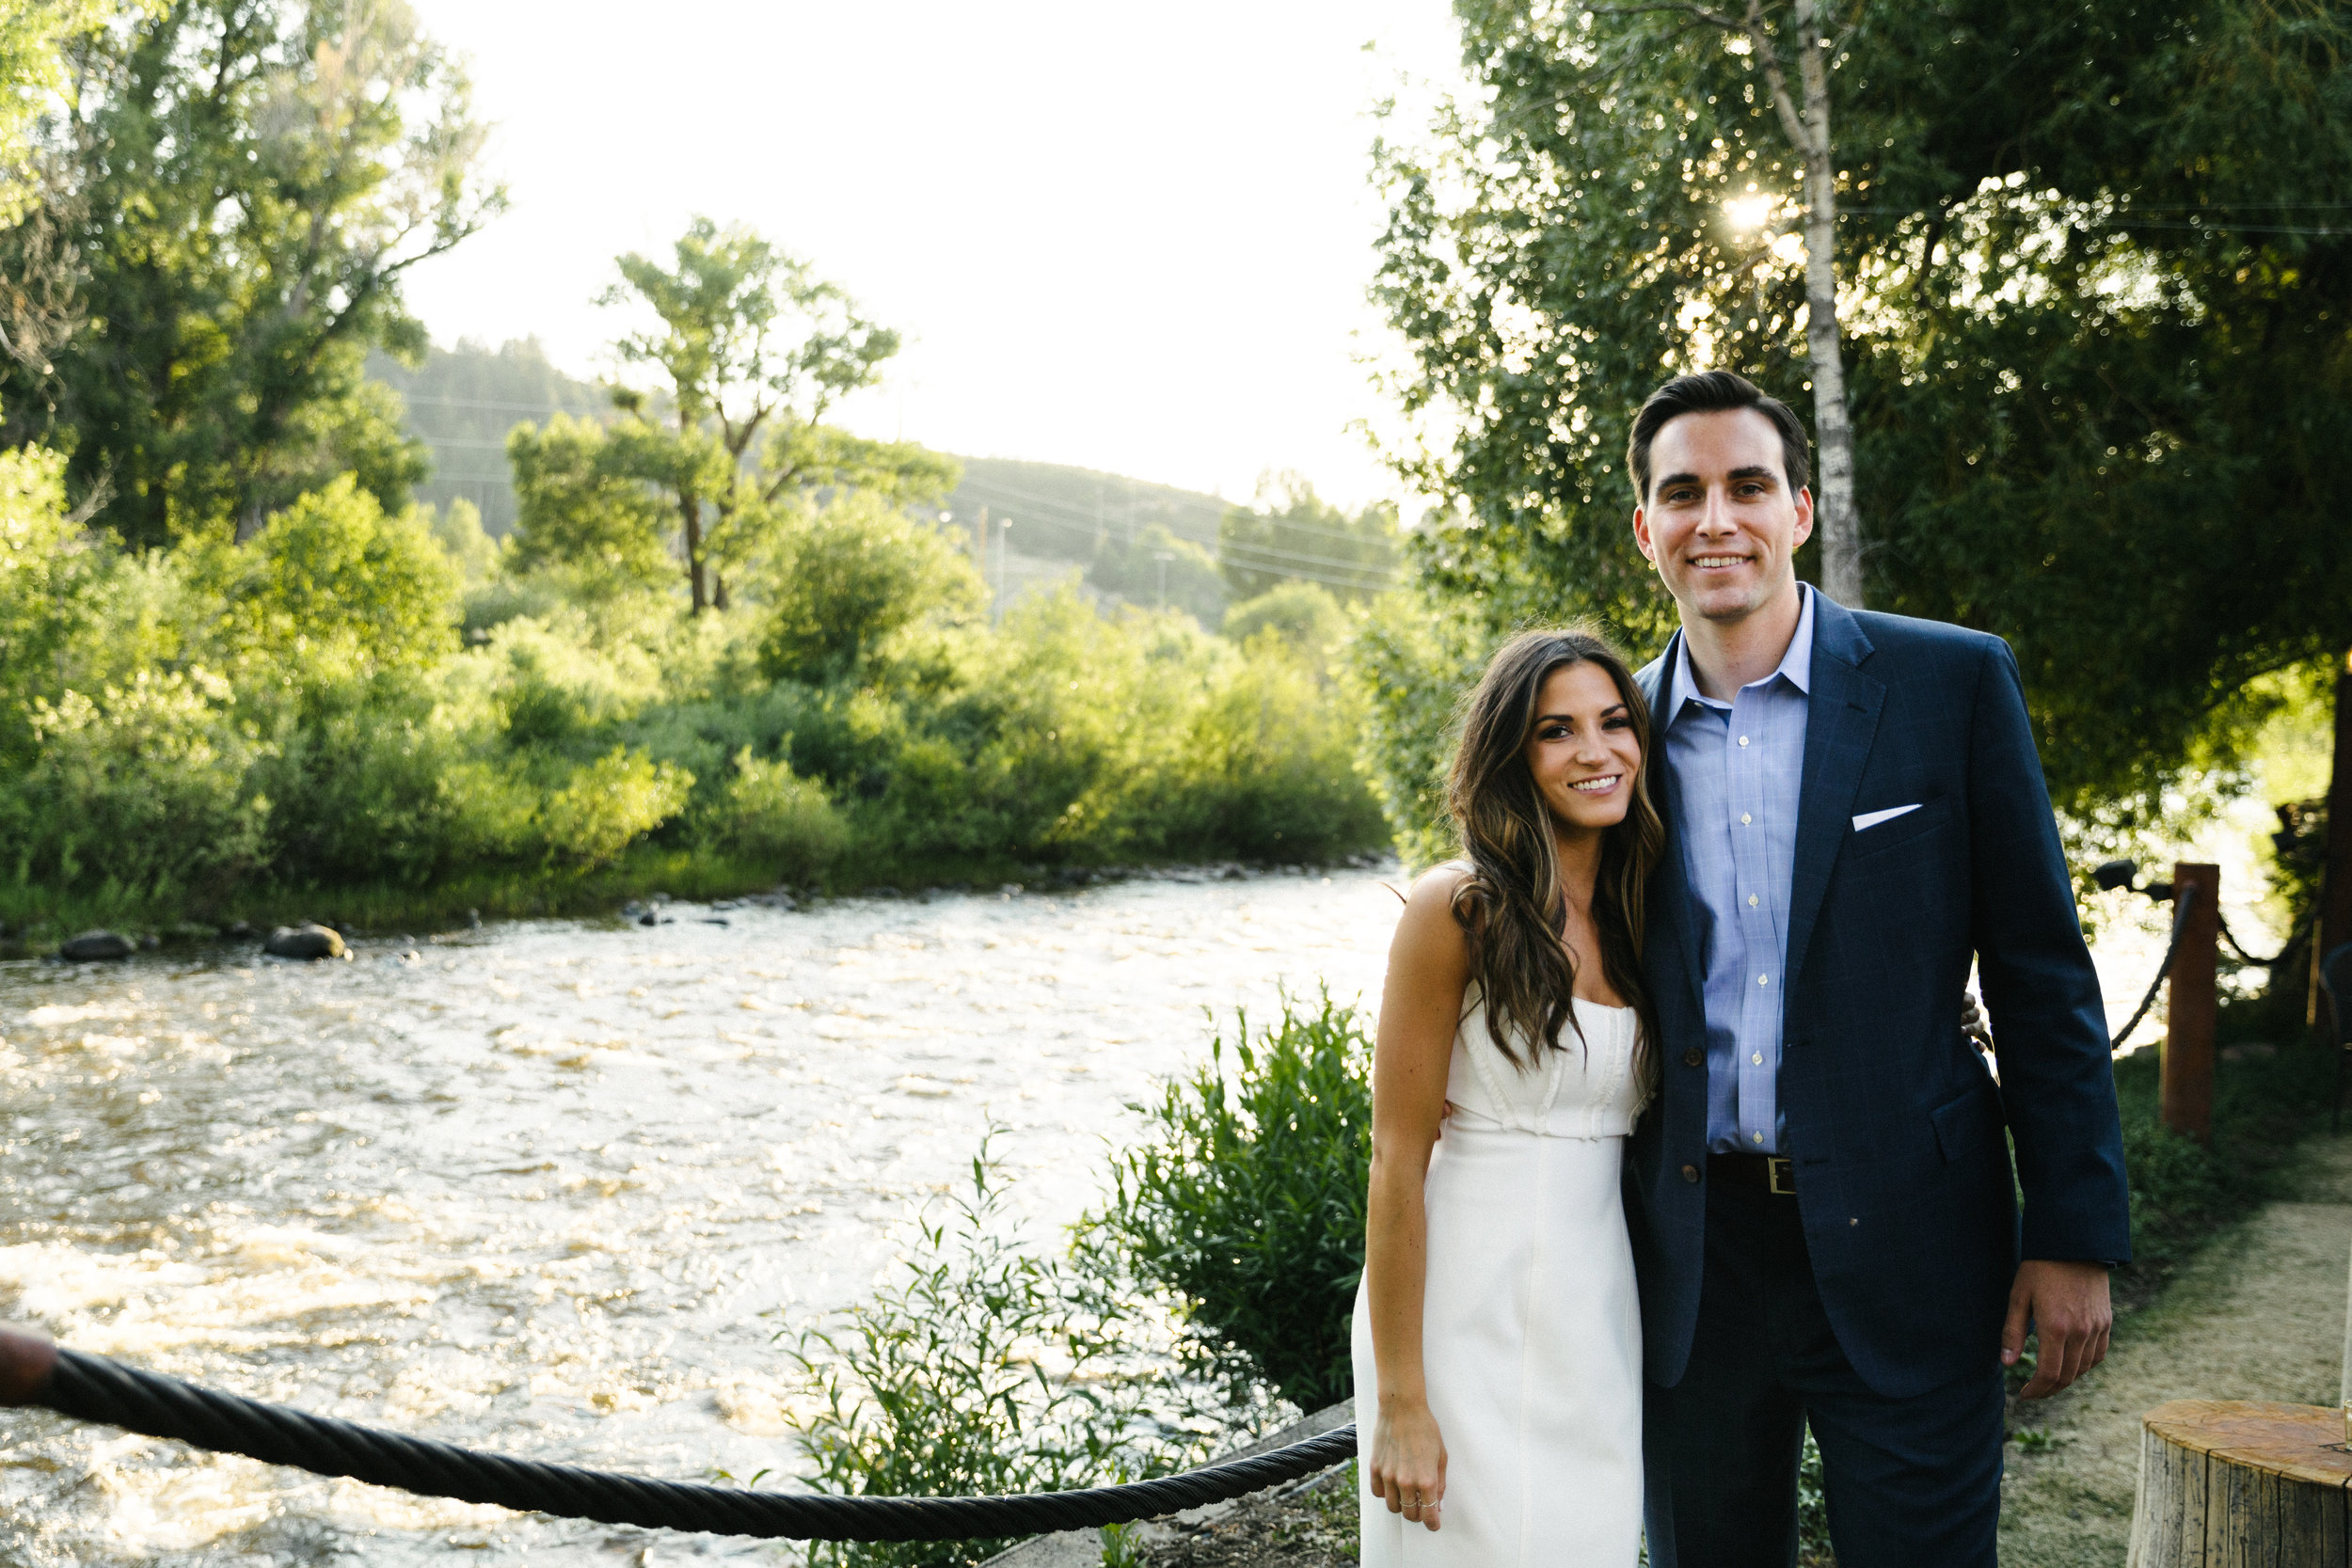 Steamboat_Wedding Photography_Forget Me Not Media_Steamboat_Portrait_Yampa River-19.jpg